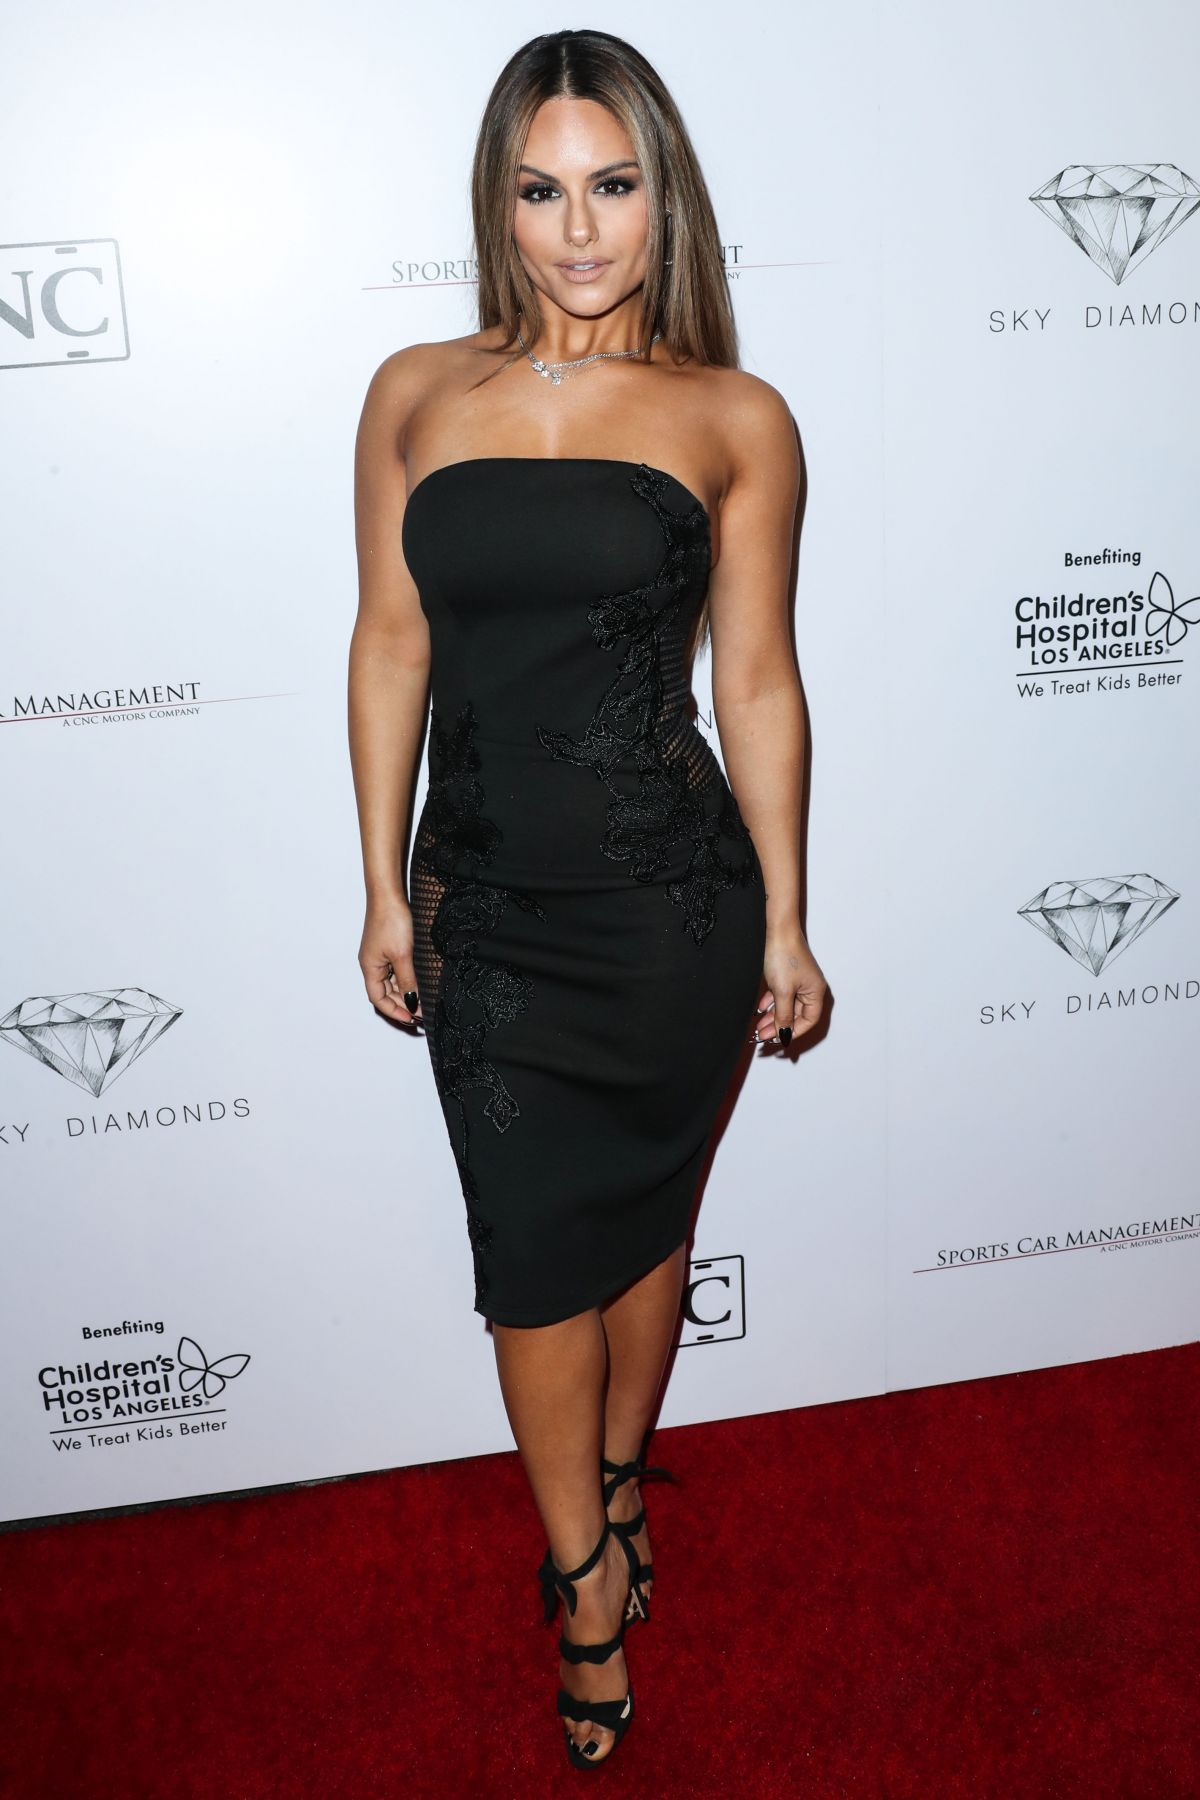 pia toscano dating 2017 Pia toscano dating history, 2018, 2017, list of pia toscano relationships  pia  toscano and jimmy ro smith have been married for 1 year since 7th jan 2017.